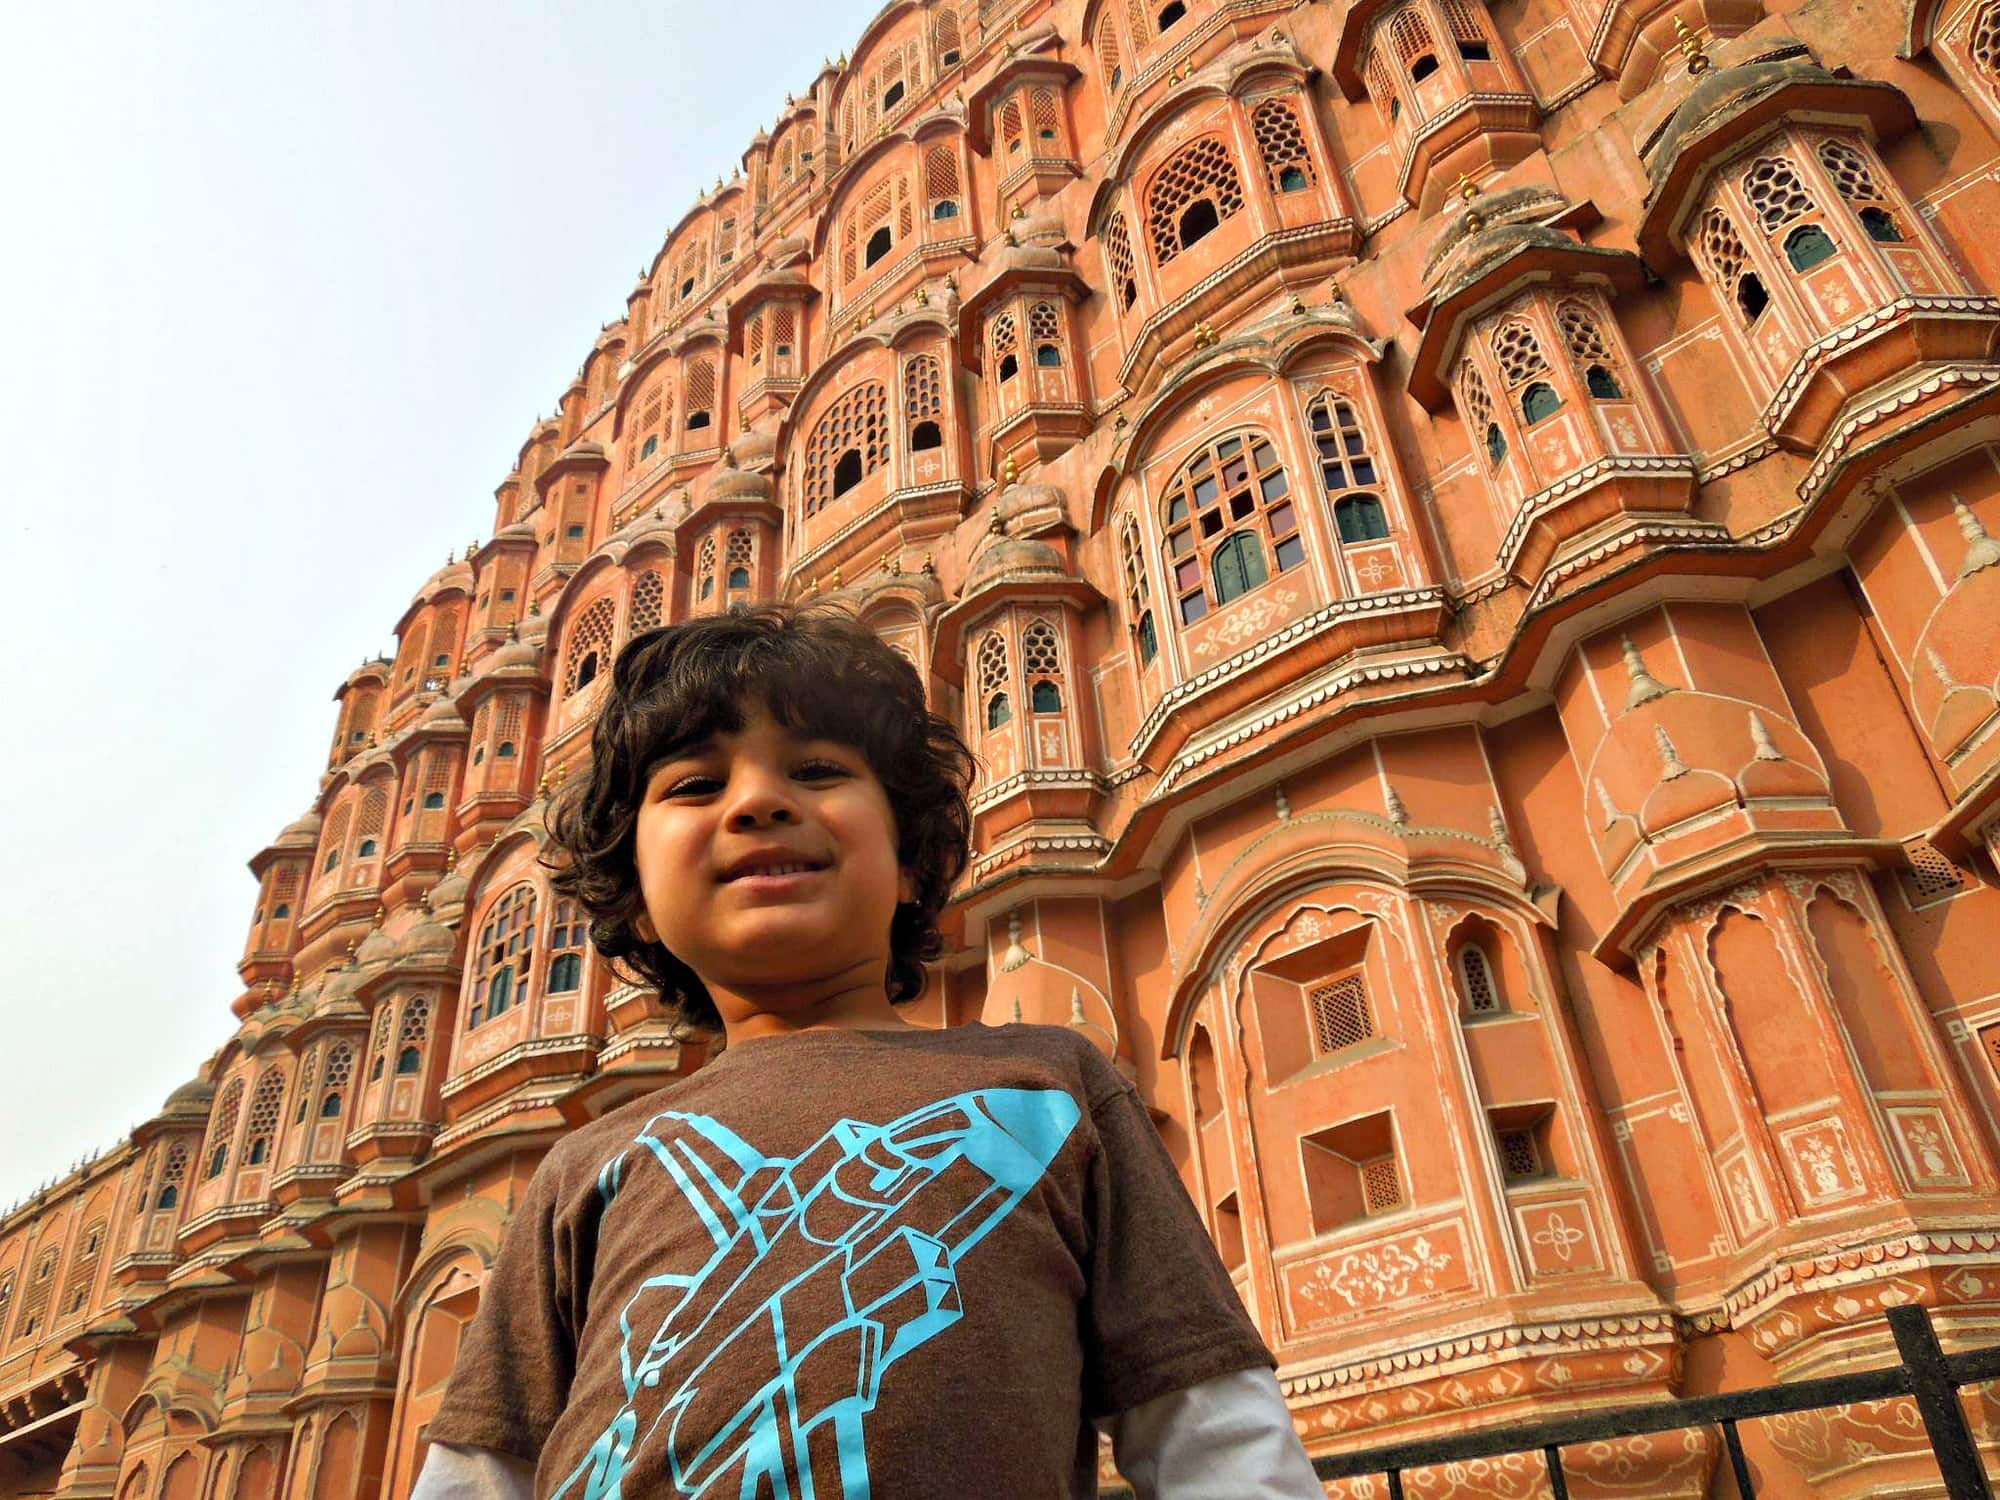 Hawa Mahal (Palace of the Winds) in India with children